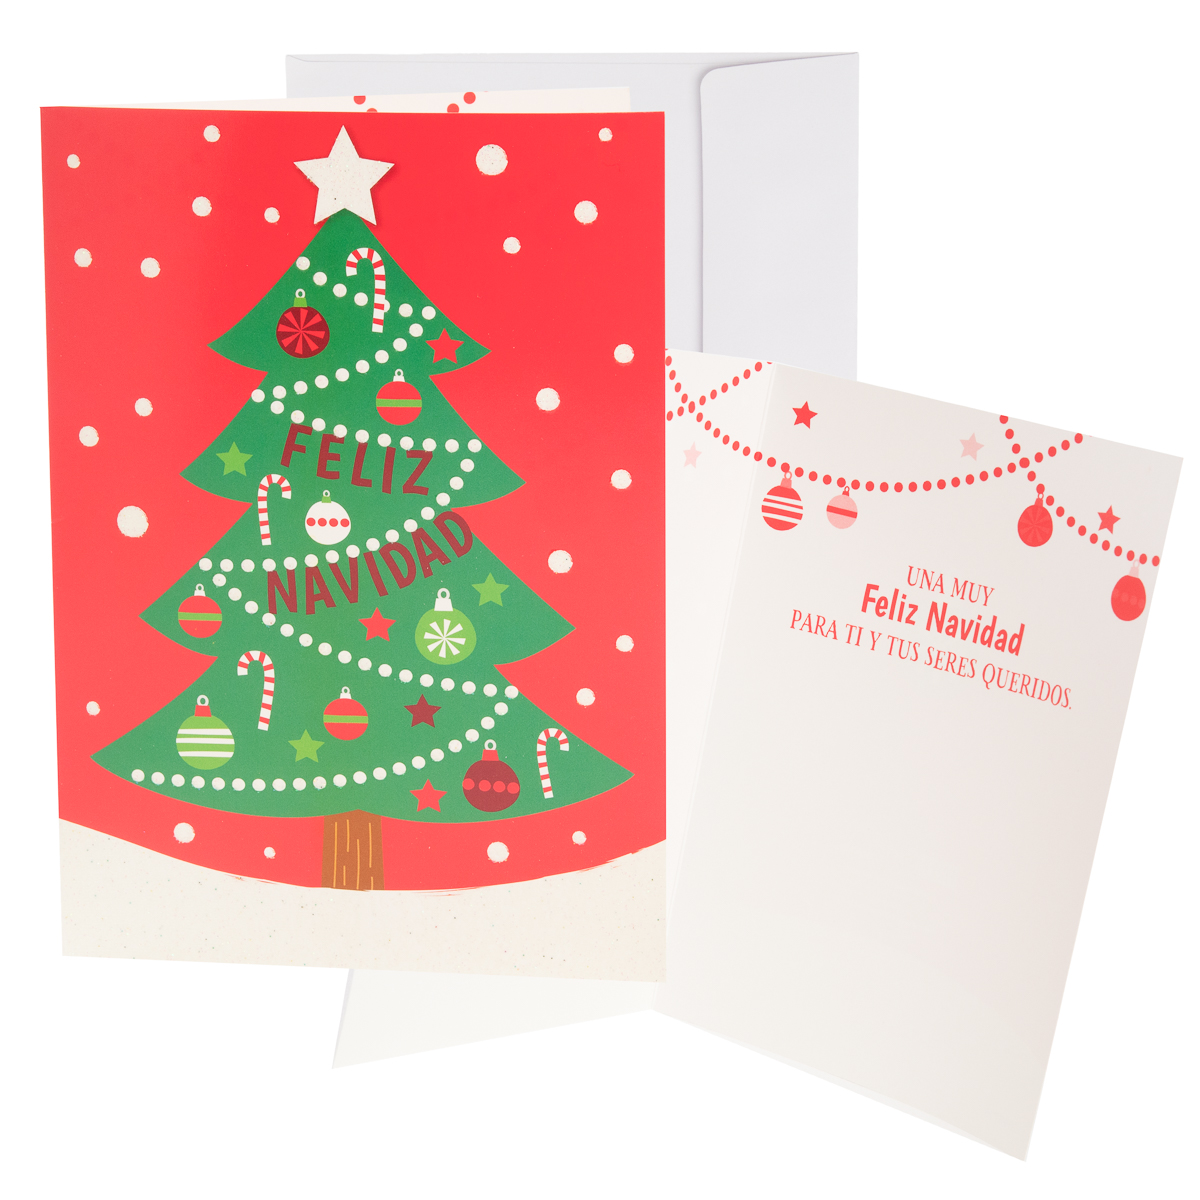 48pk-Merry-Christmas-Cards-Bulk-Assortment-Holiday-Card-Pack-with-Foil-amp-Glitter thumbnail 23